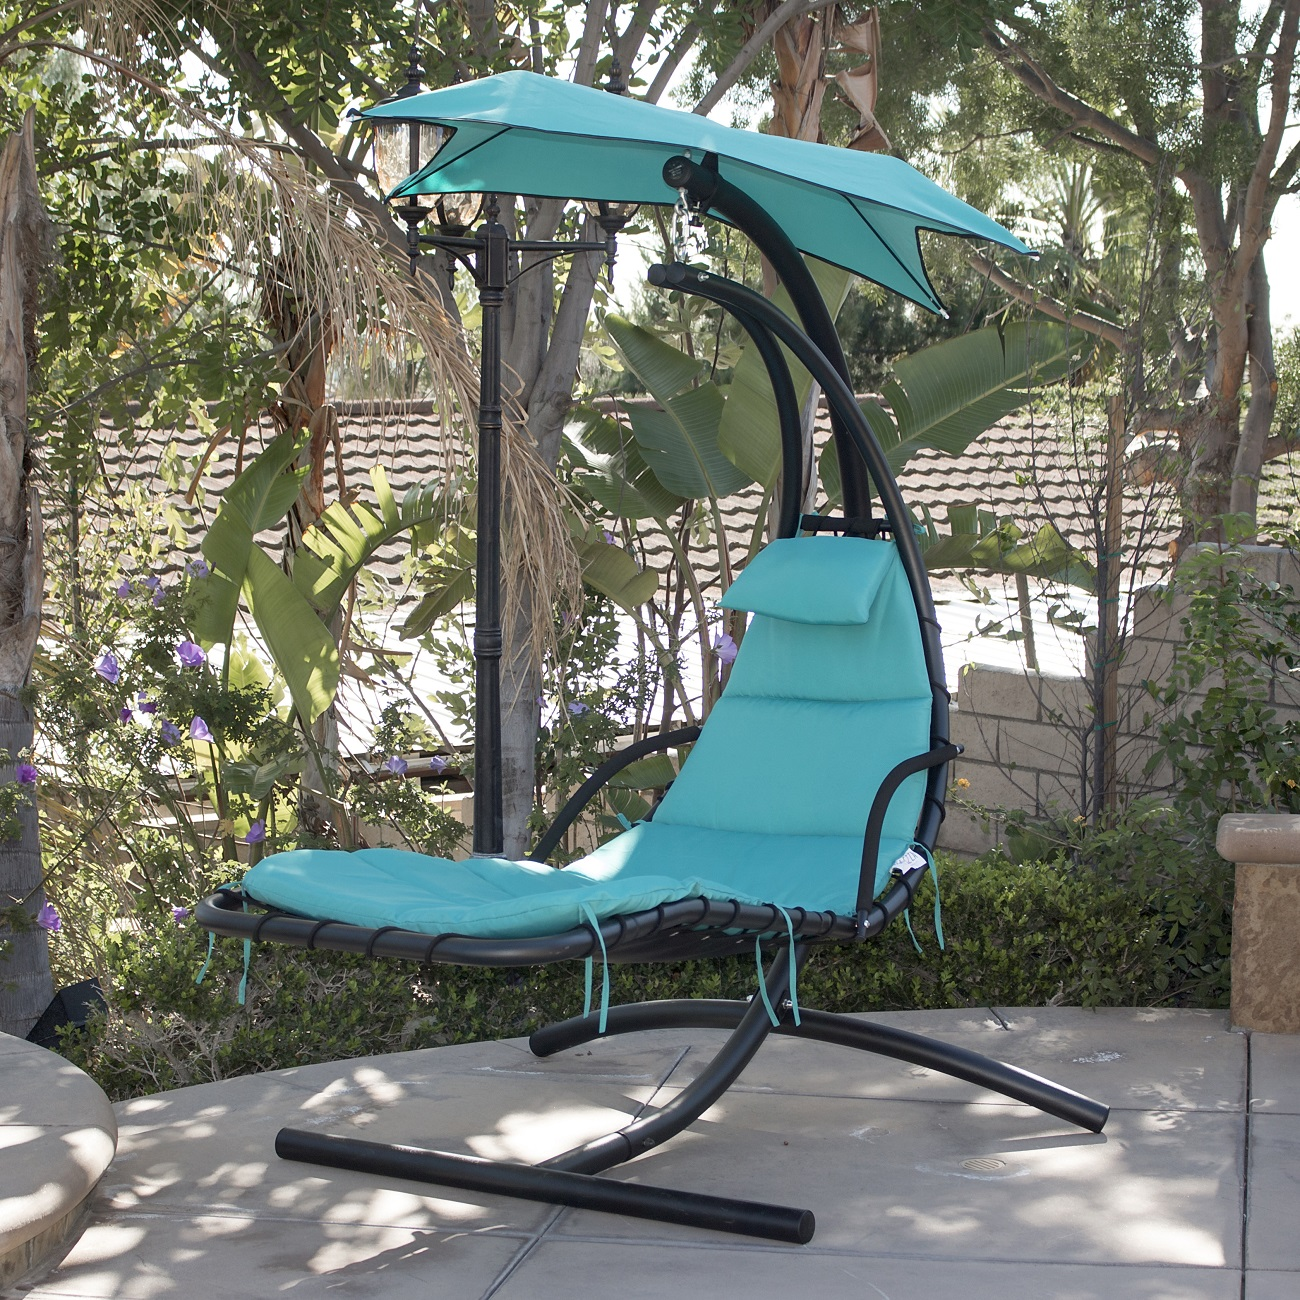 Hanging-Chaise-Lounger-Chair-Arc-Stand-Air-Porch- & Hanging Chaise Lounger Chair Arc Stand Air Porch Swing Hammock ...